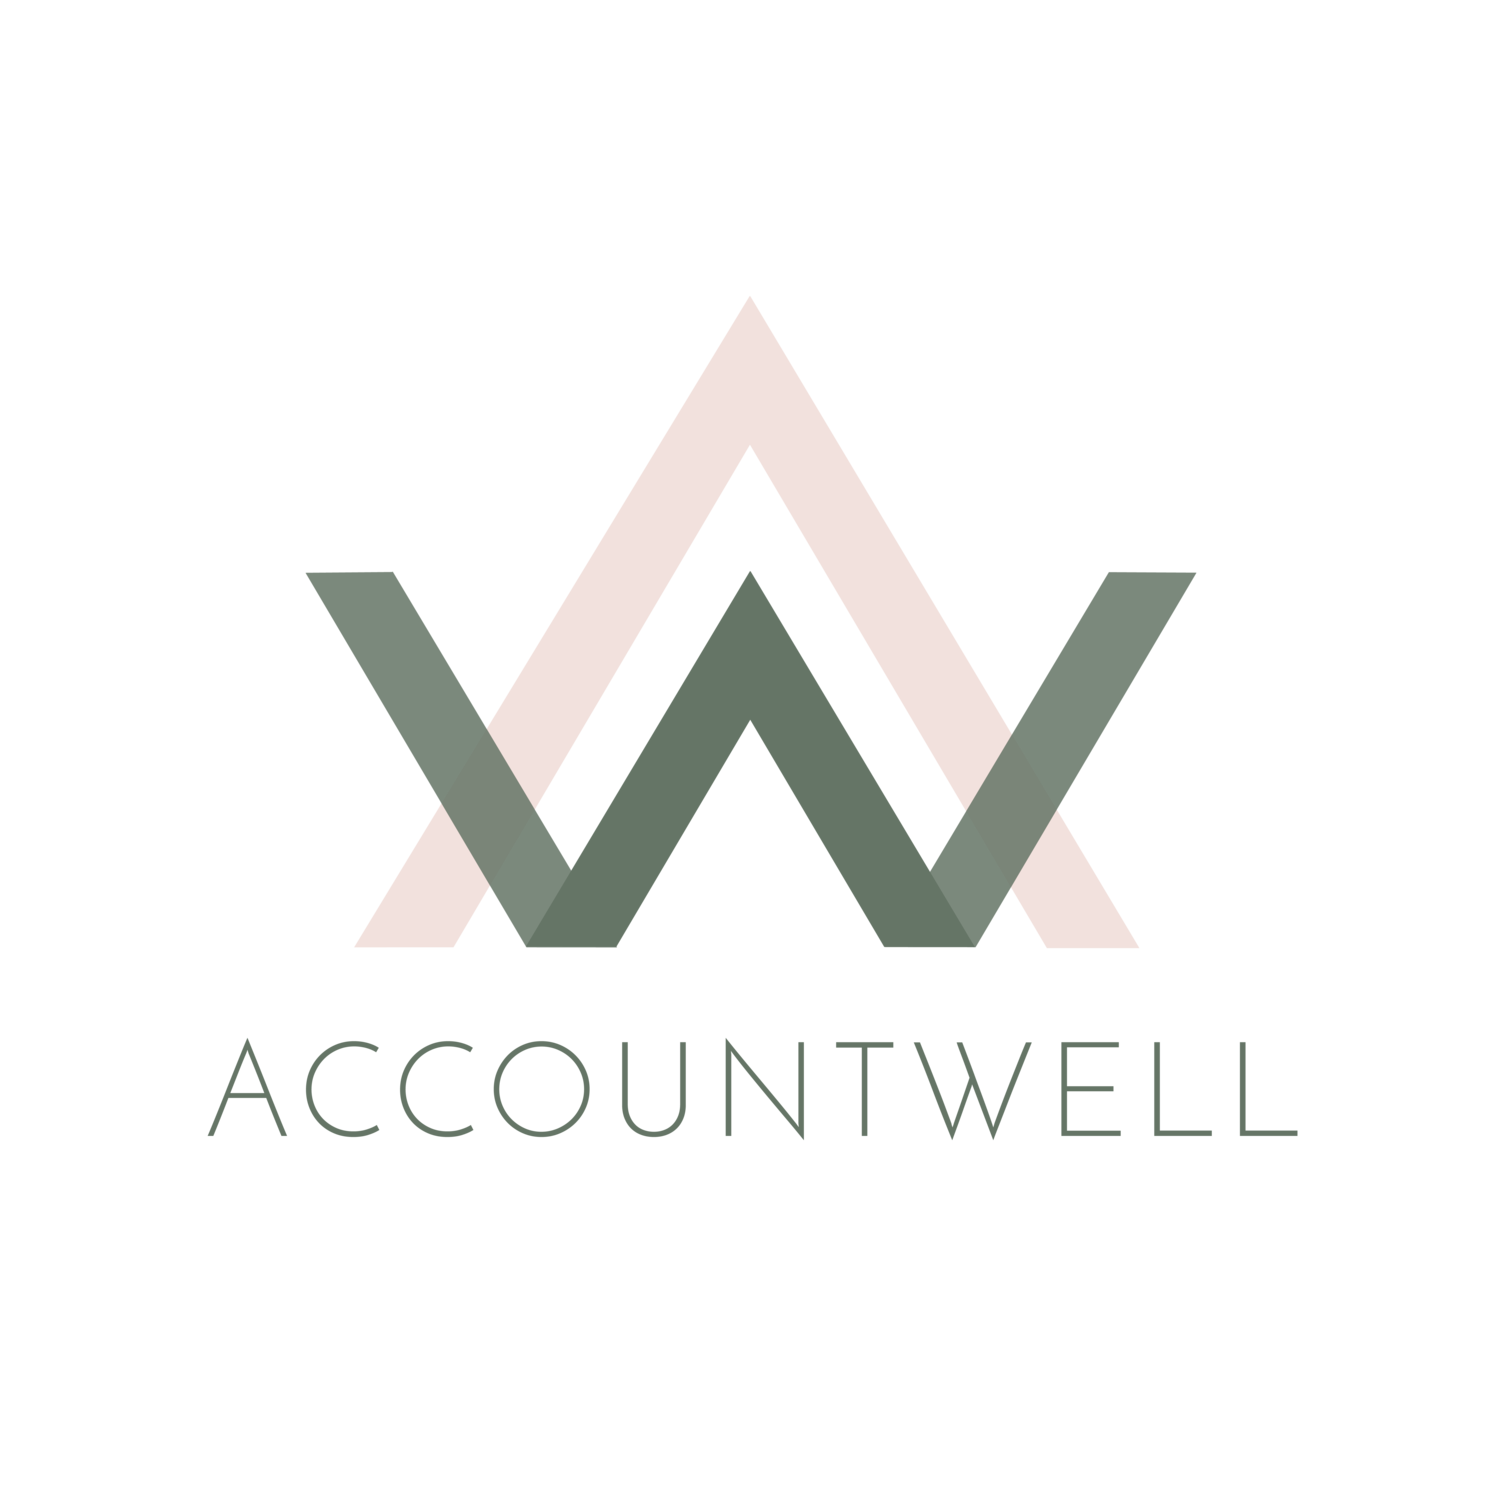 Accountwell Co.